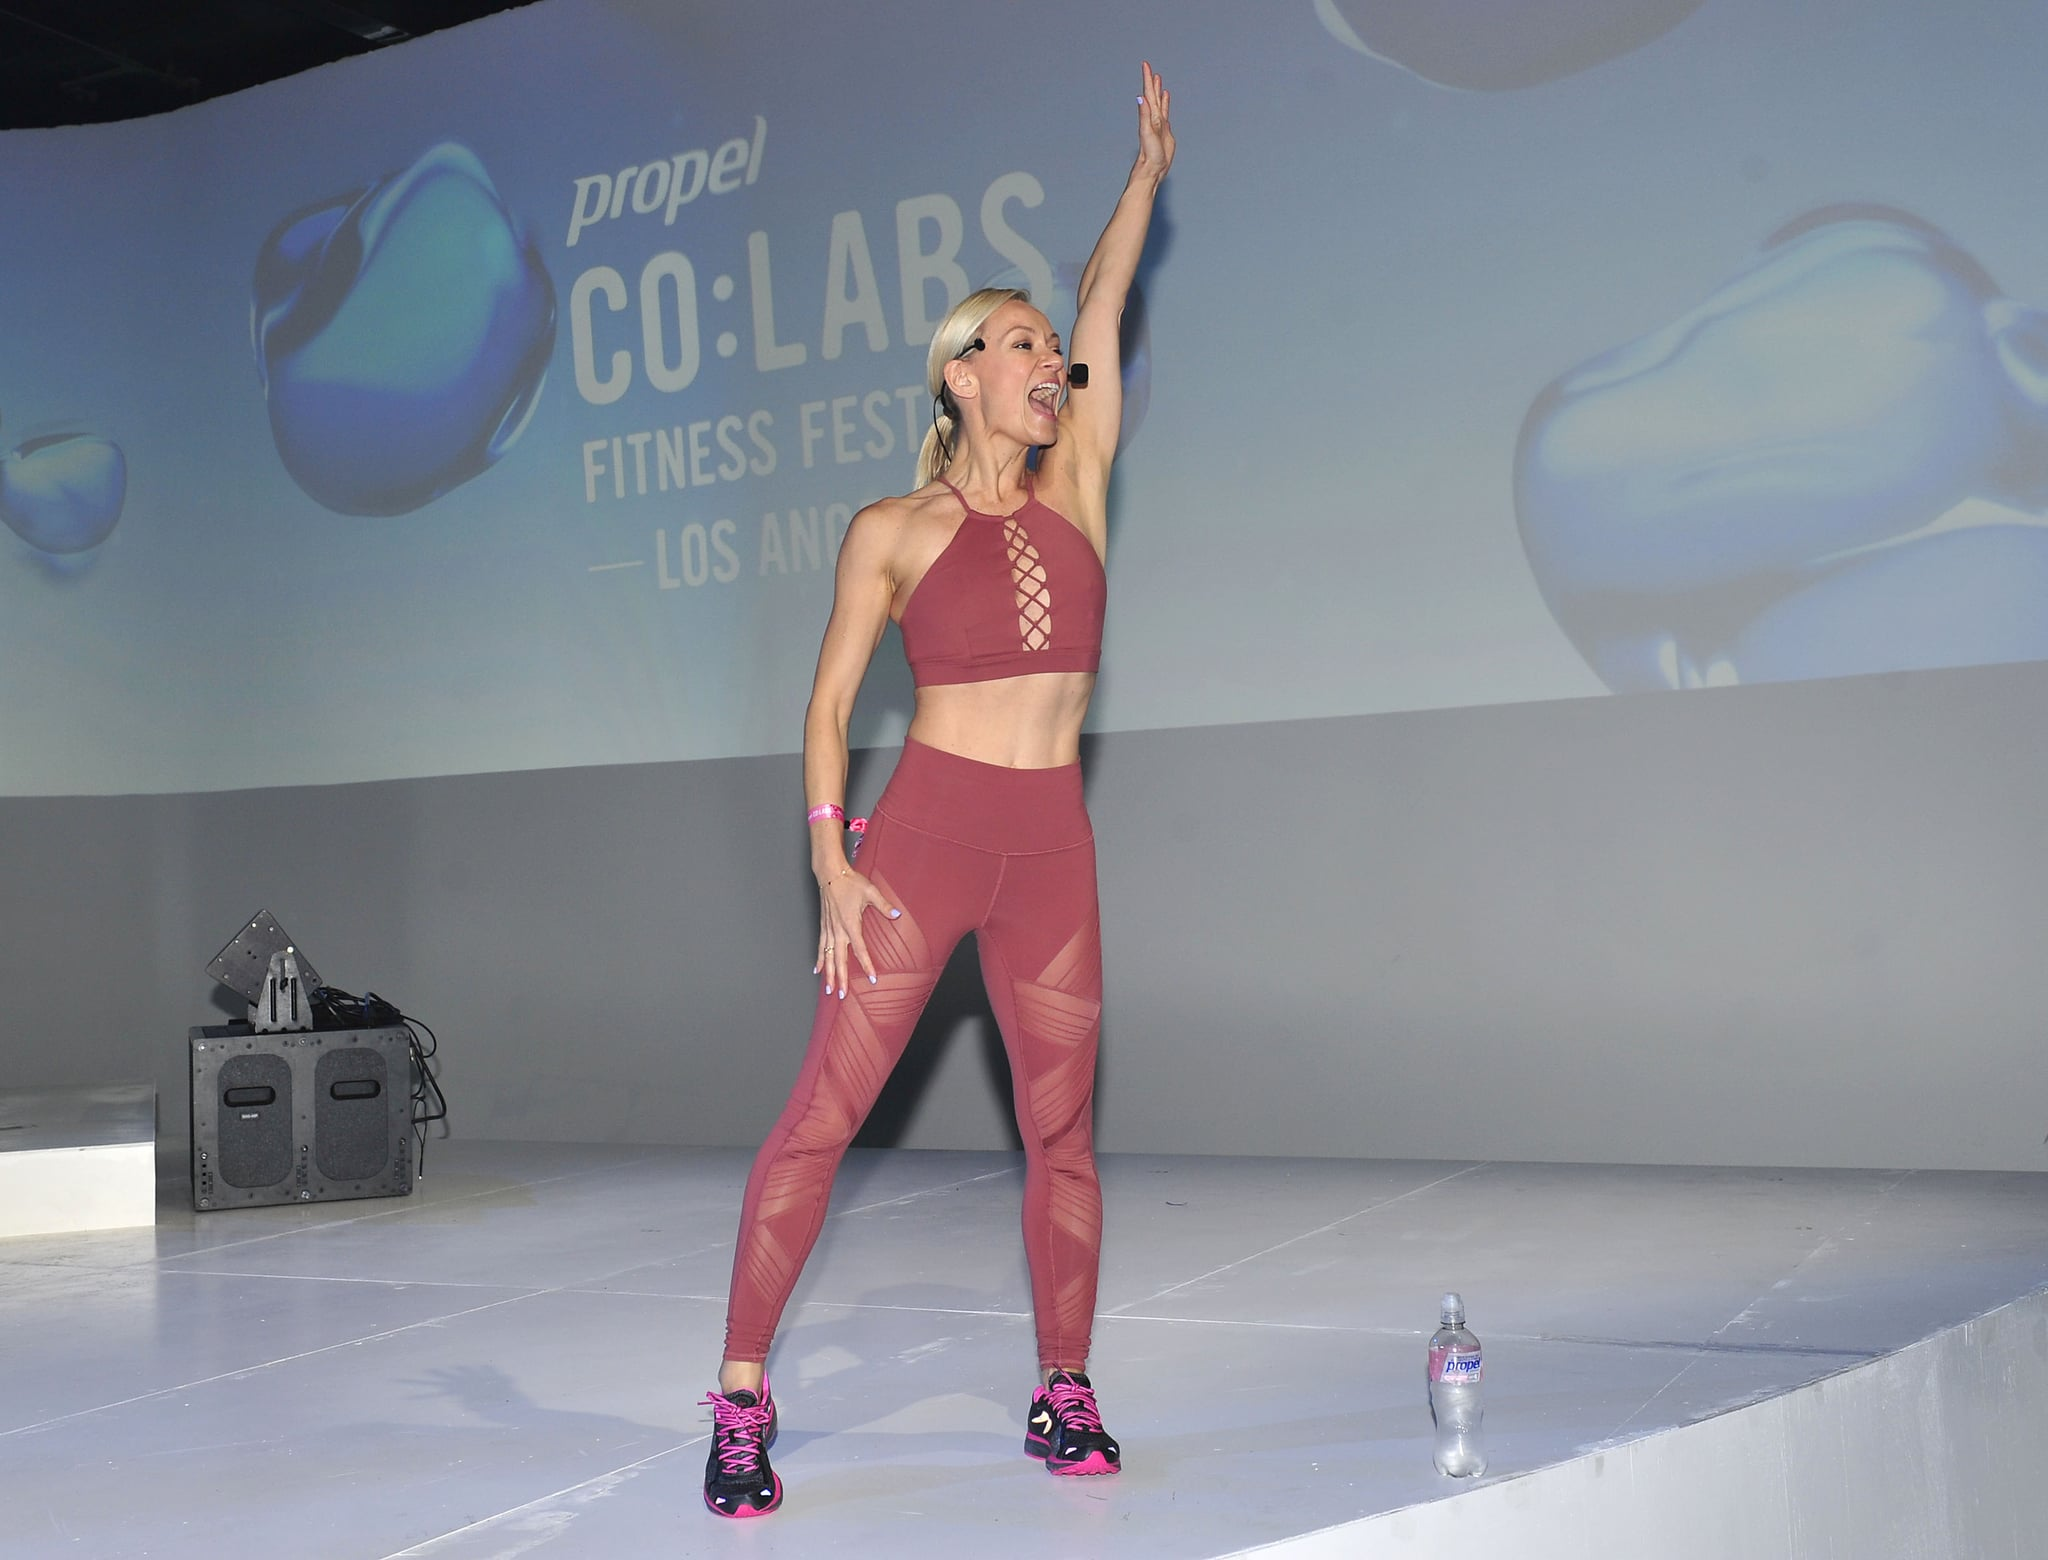 - Los Angeles, CA - 05/05/2018 - Julianne Hough at the Propel Fitness Festival.-PICTURED: Julianne Hough-PHOTO by: Michael Simon/startraksphoto.com-MS453002Editorial - Rights Managed Image - Please contact www.startraksphoto.com for licensing fee Startraks PhotoStartraks PhotoNew York, NY For licensing please call 212-414-9464 or email sales@startraksphoto.comImage may not be published in any way that is or might be deemed defamatory, libelous, pornographic, or obscene. Please consult our sales department for any clarification or question you may haveStartraks Photo reserves the right to pursue unauthorized users of this image. If you violate our intellectual property you may be liable for actual damages, loss of income, and profits you derive from the use of this image, and where appropriate, the cost of collection and/or statutory damages.